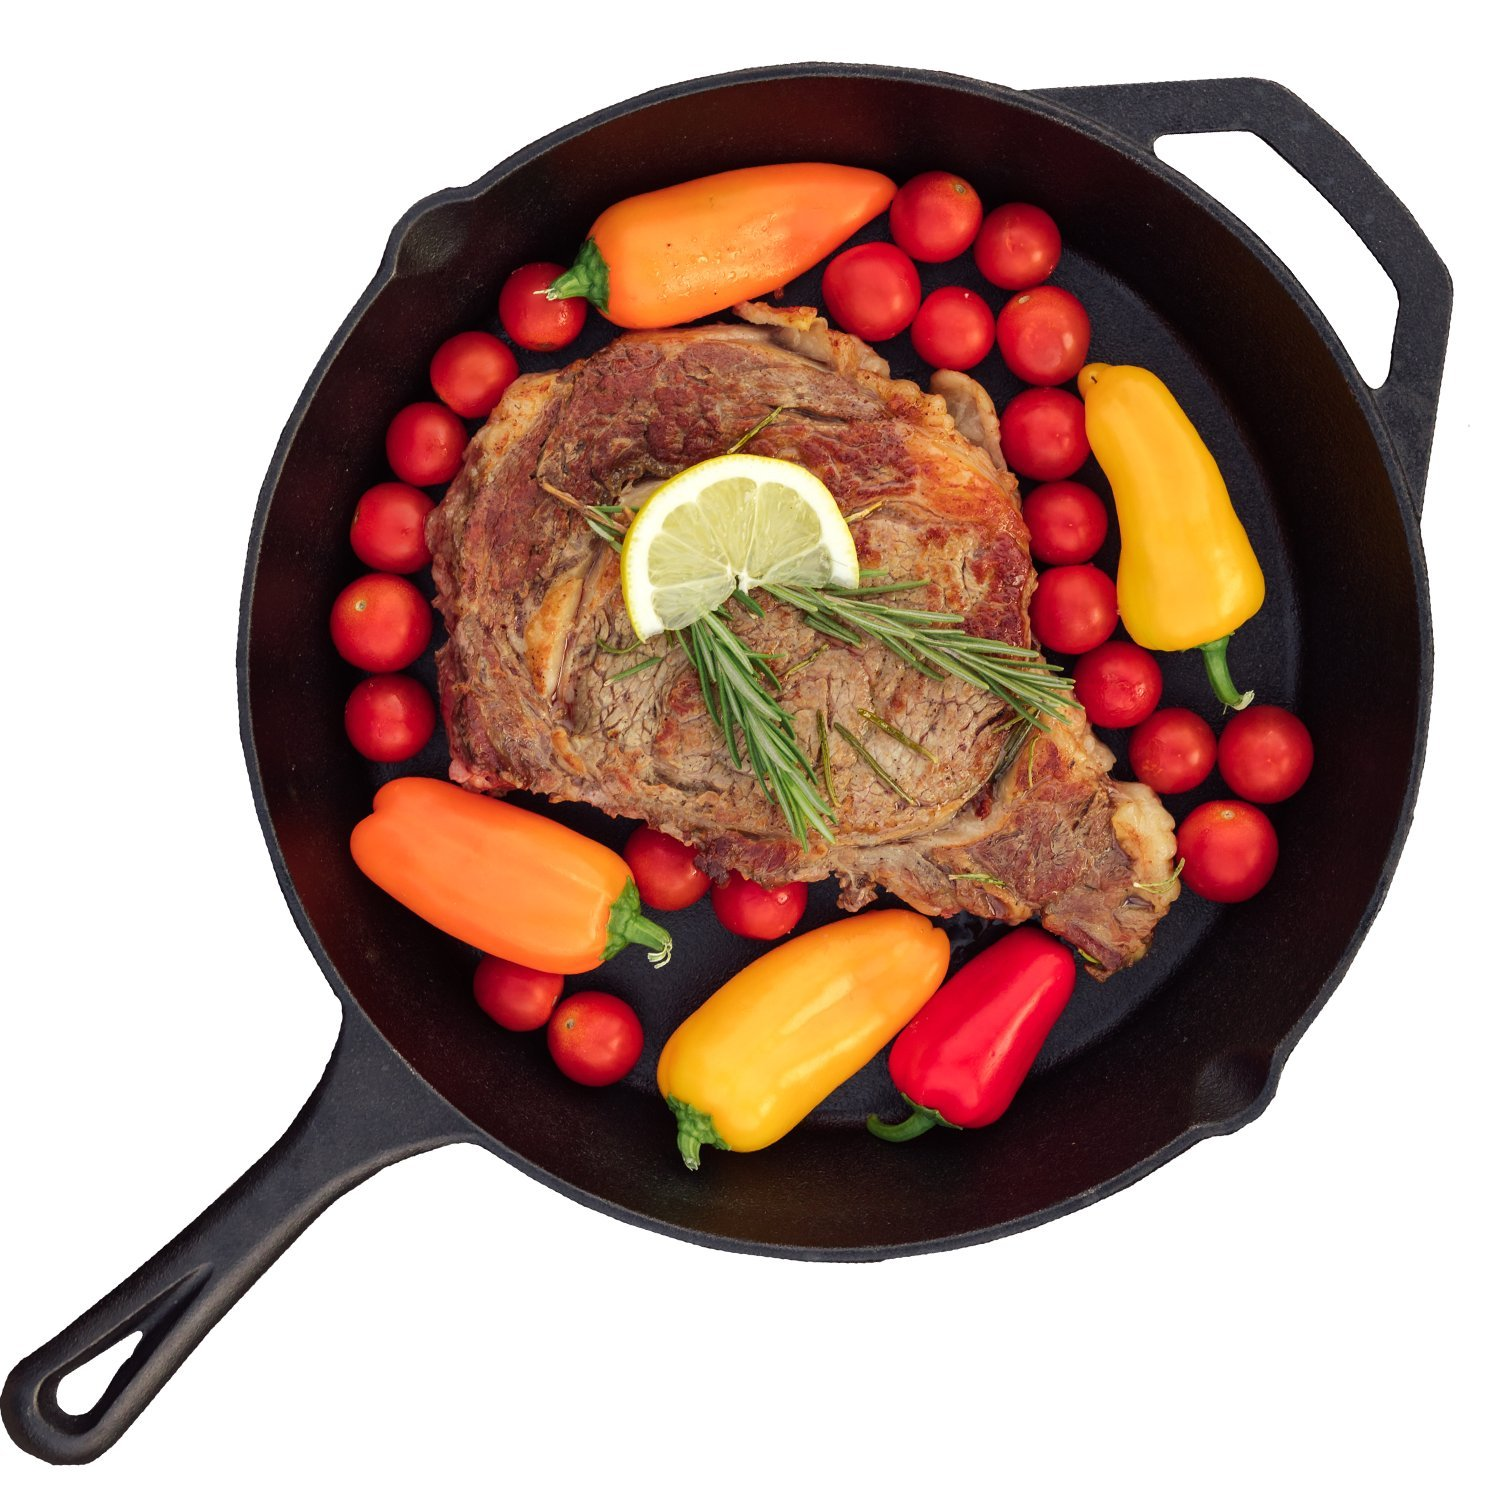 Rippl Cast Iron Skillet - 12-inch - Pre-Seasoned Grill Pan with Handle